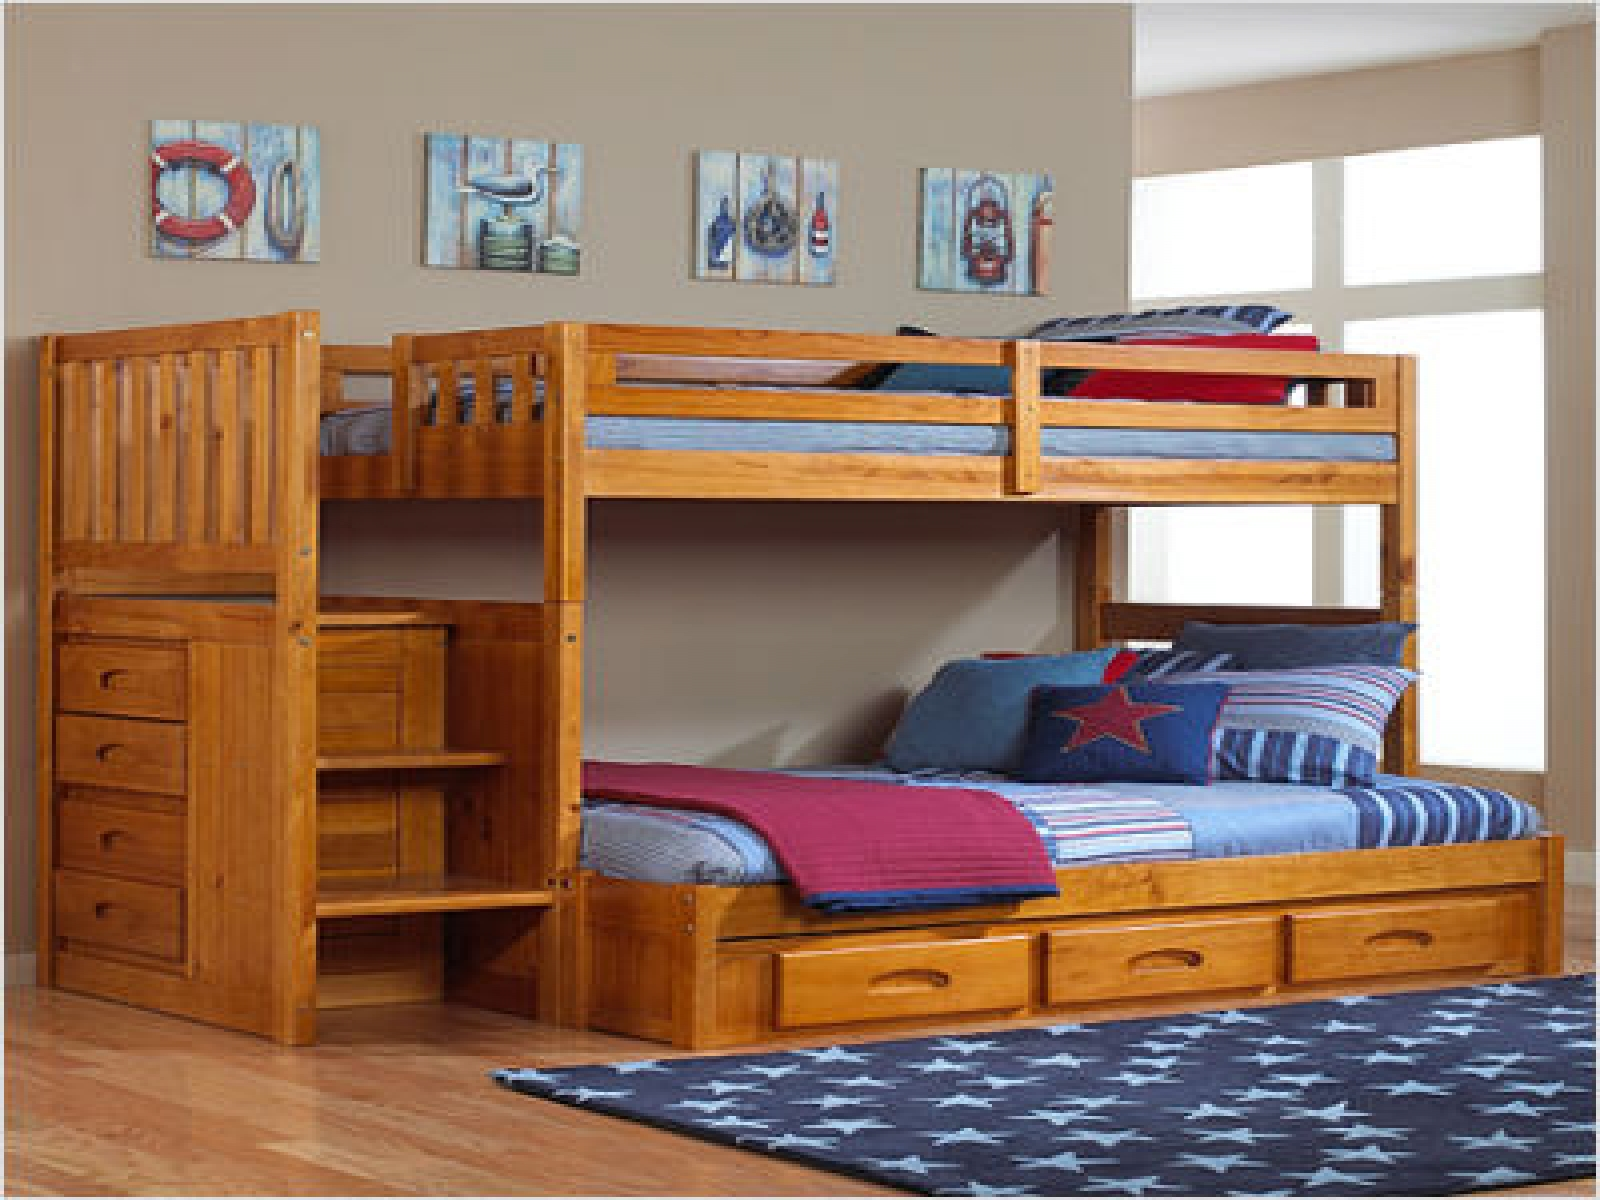 wooden furniture for kids bedroom photo - 3